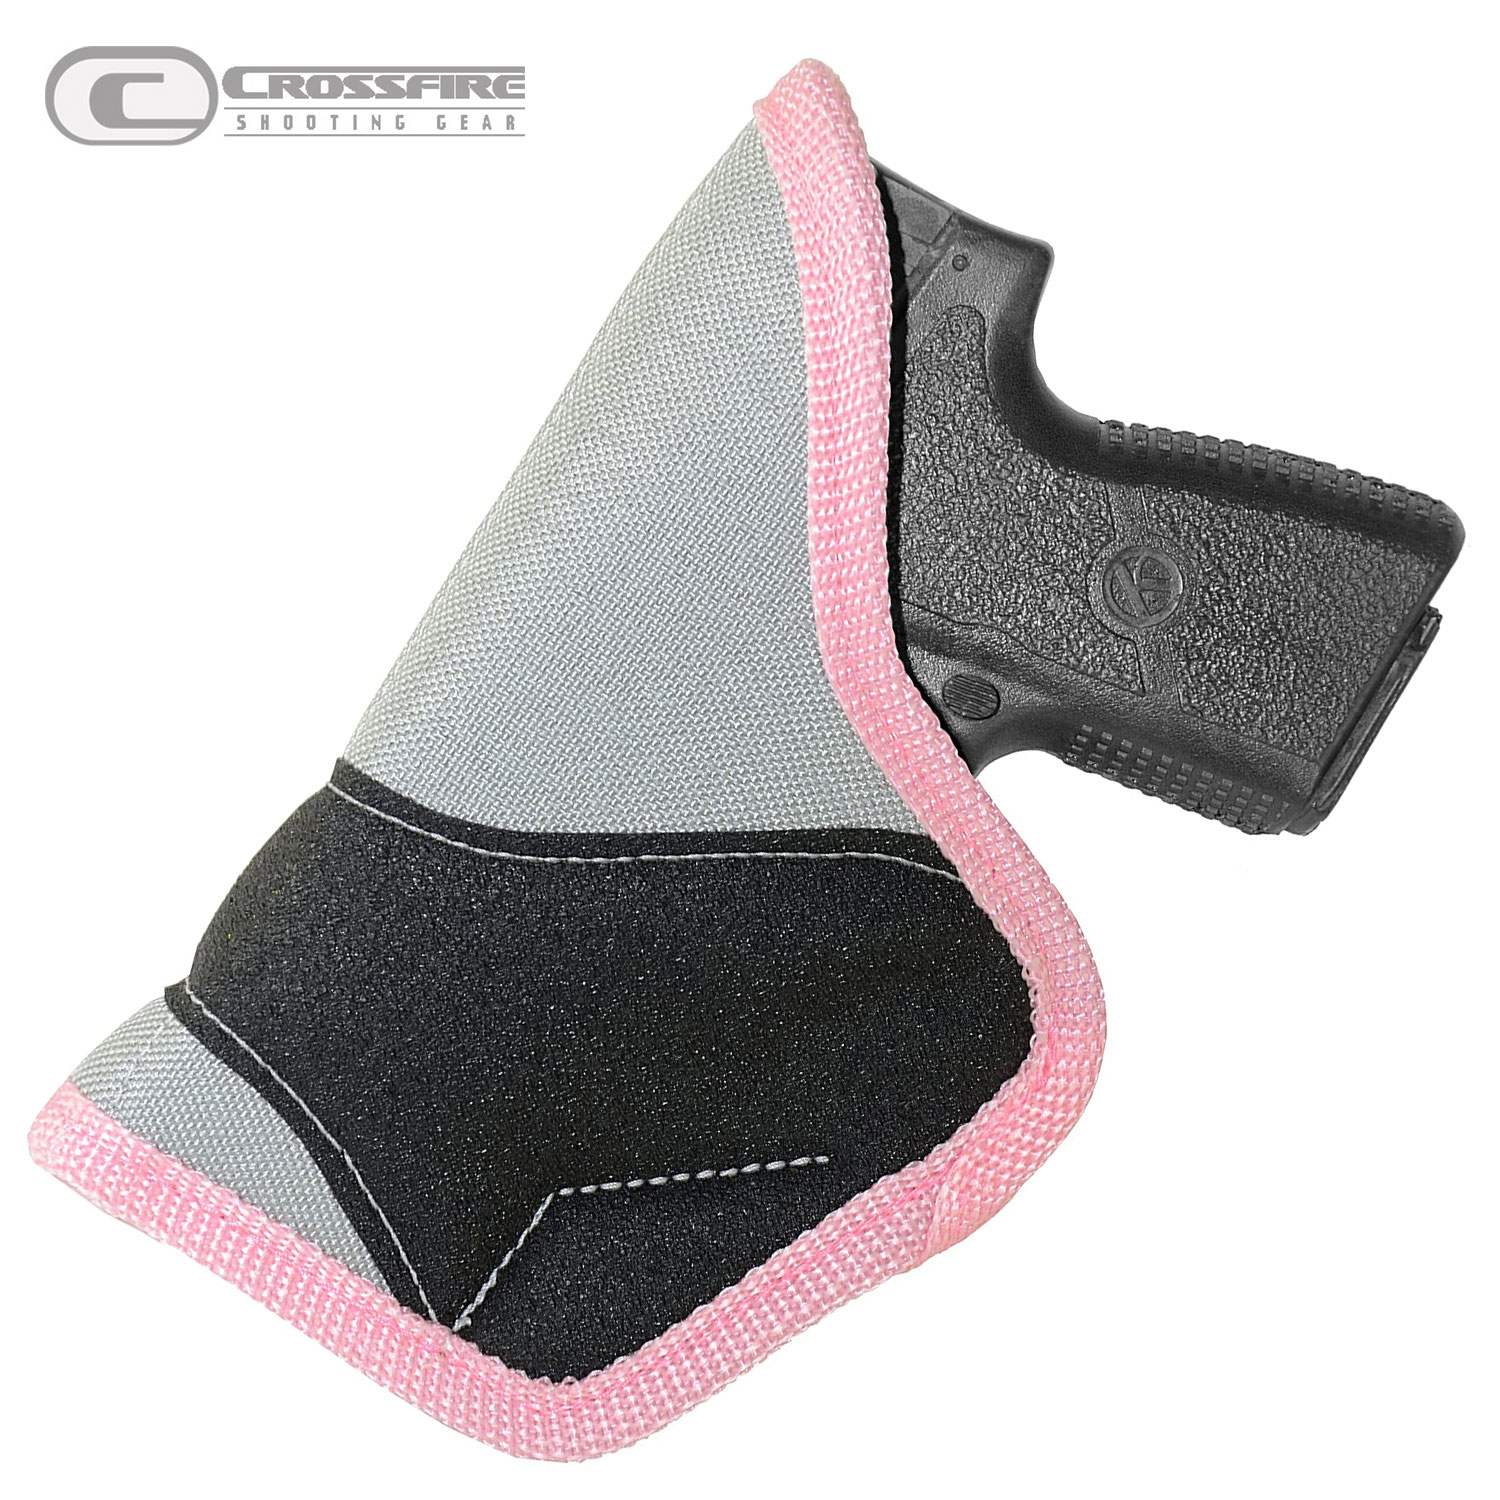 CrossFire The Rebel Pocket Conceal-Carry Micro Holster LH/RH-